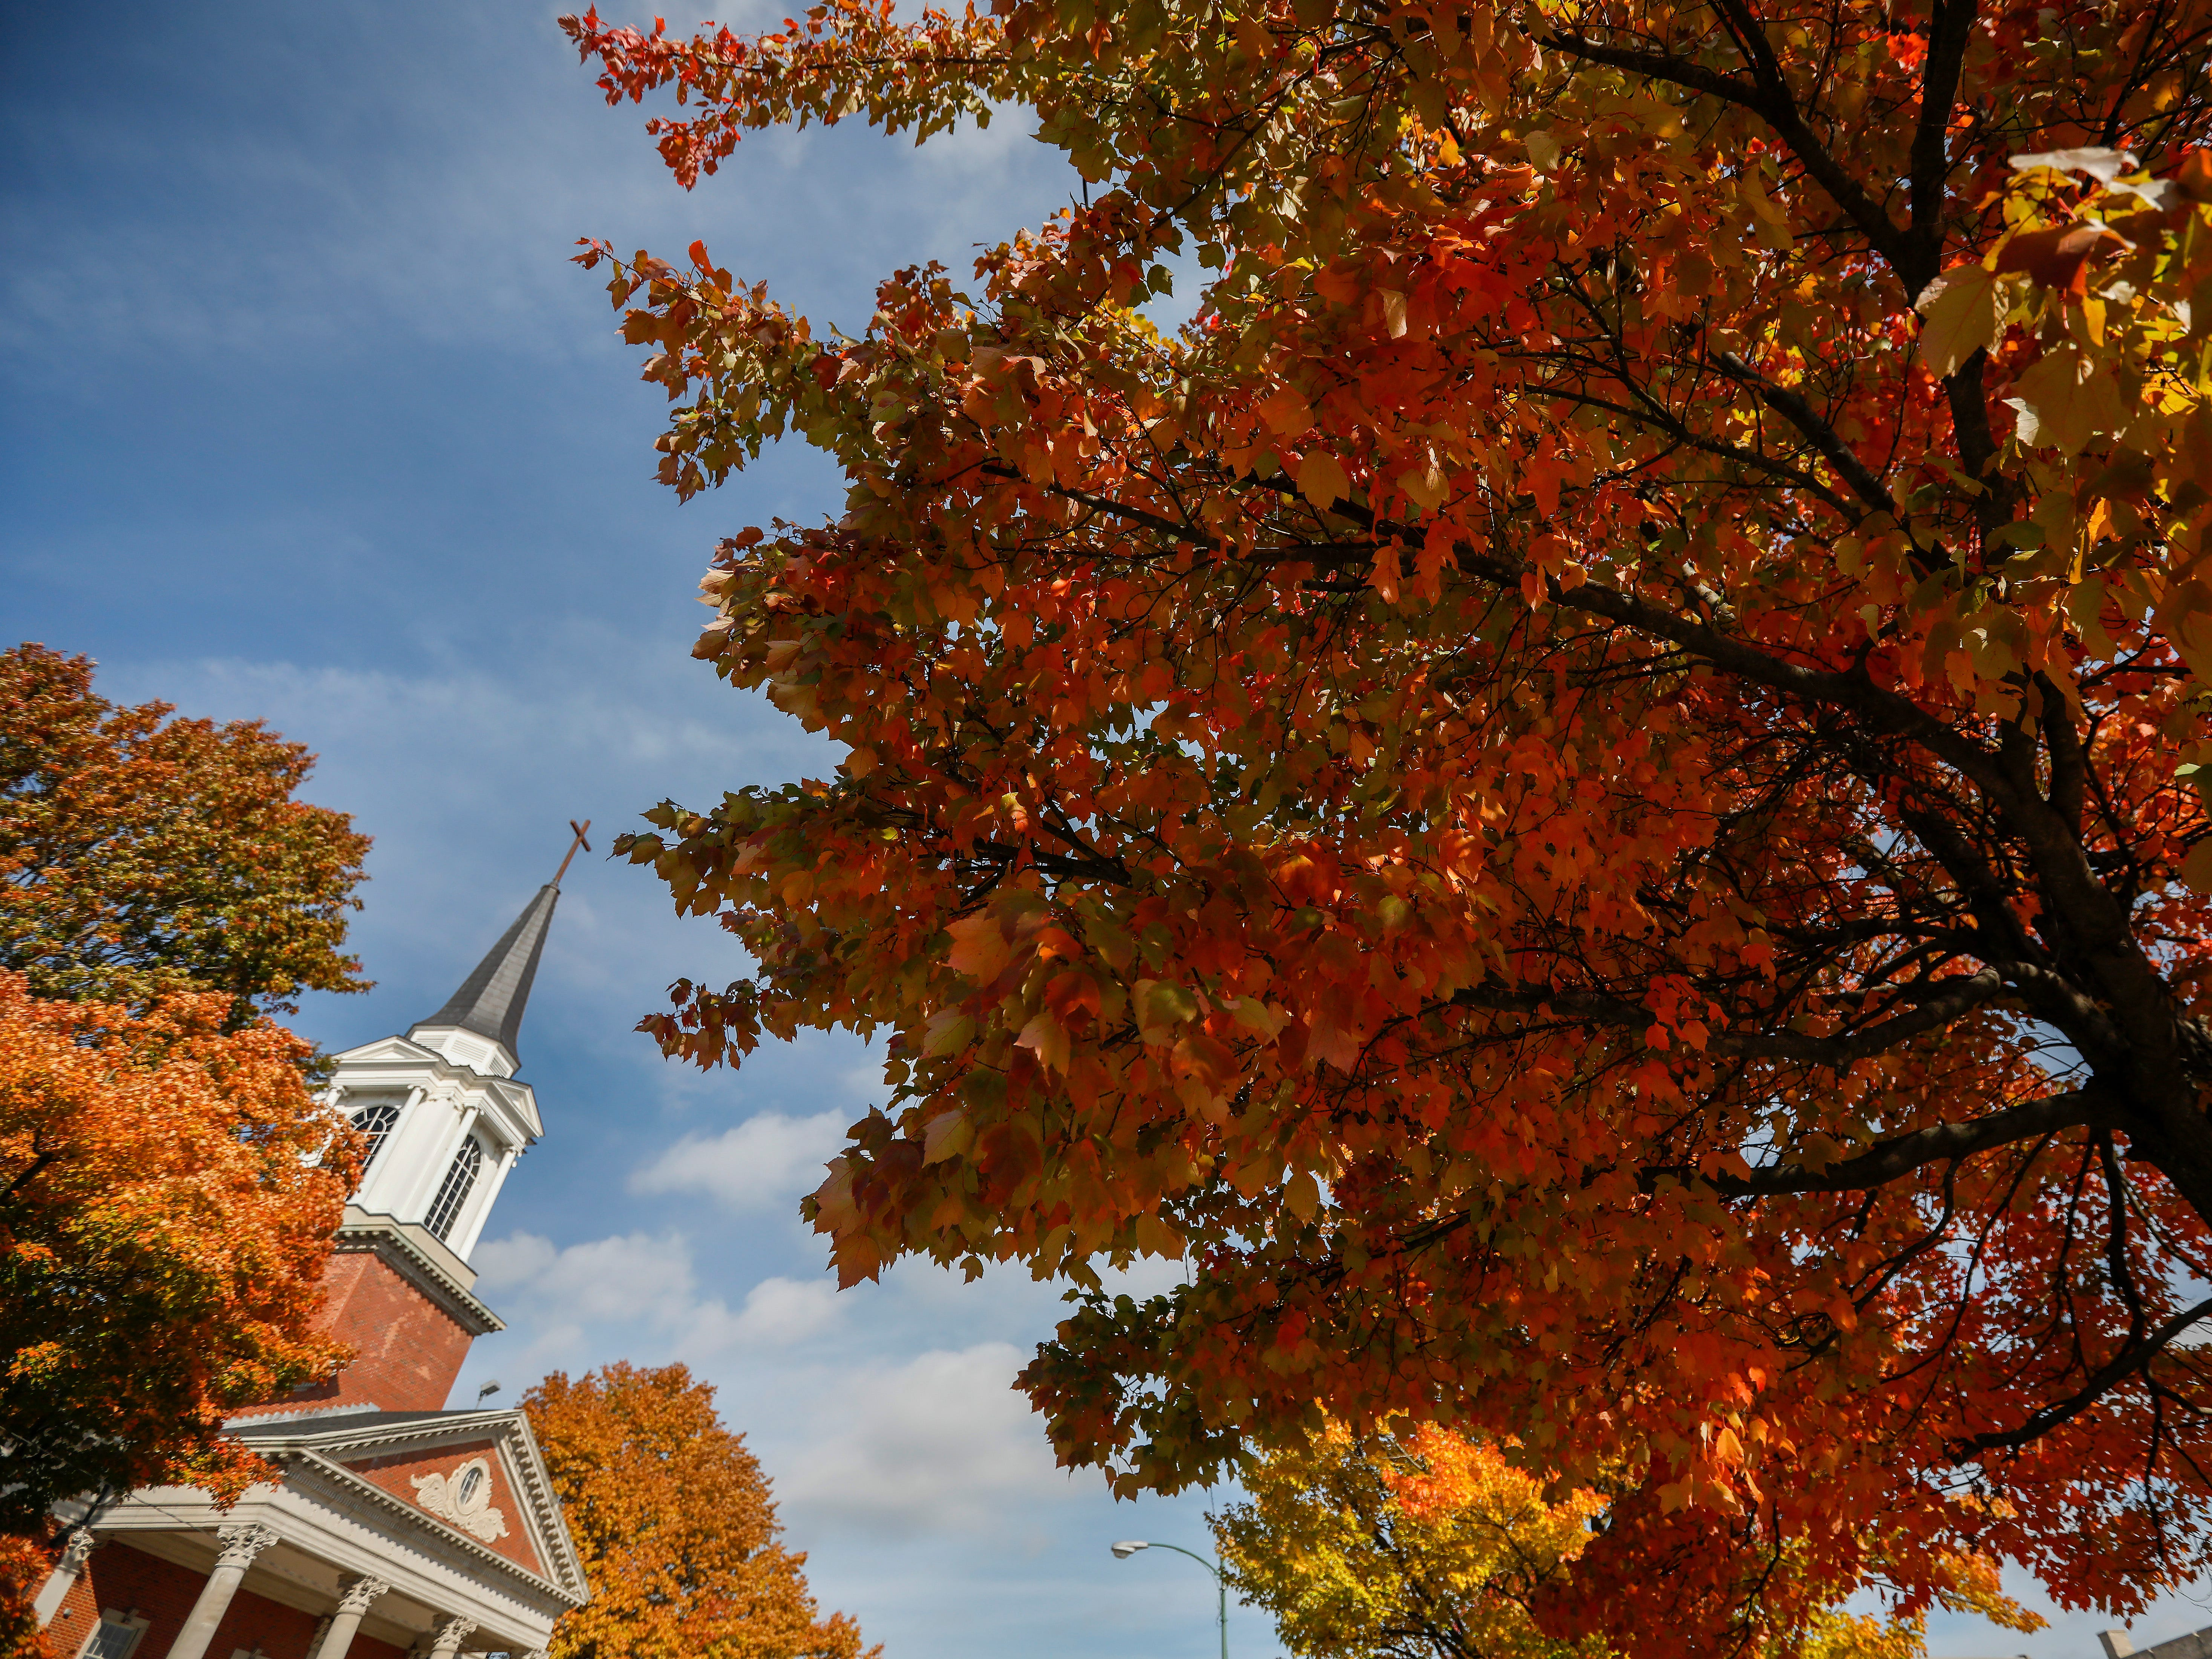 The steeple at the First Baptist Church on South Avenue is framed by some trees with beautiful fall color on Tuesday, Oct. 30, 2018.